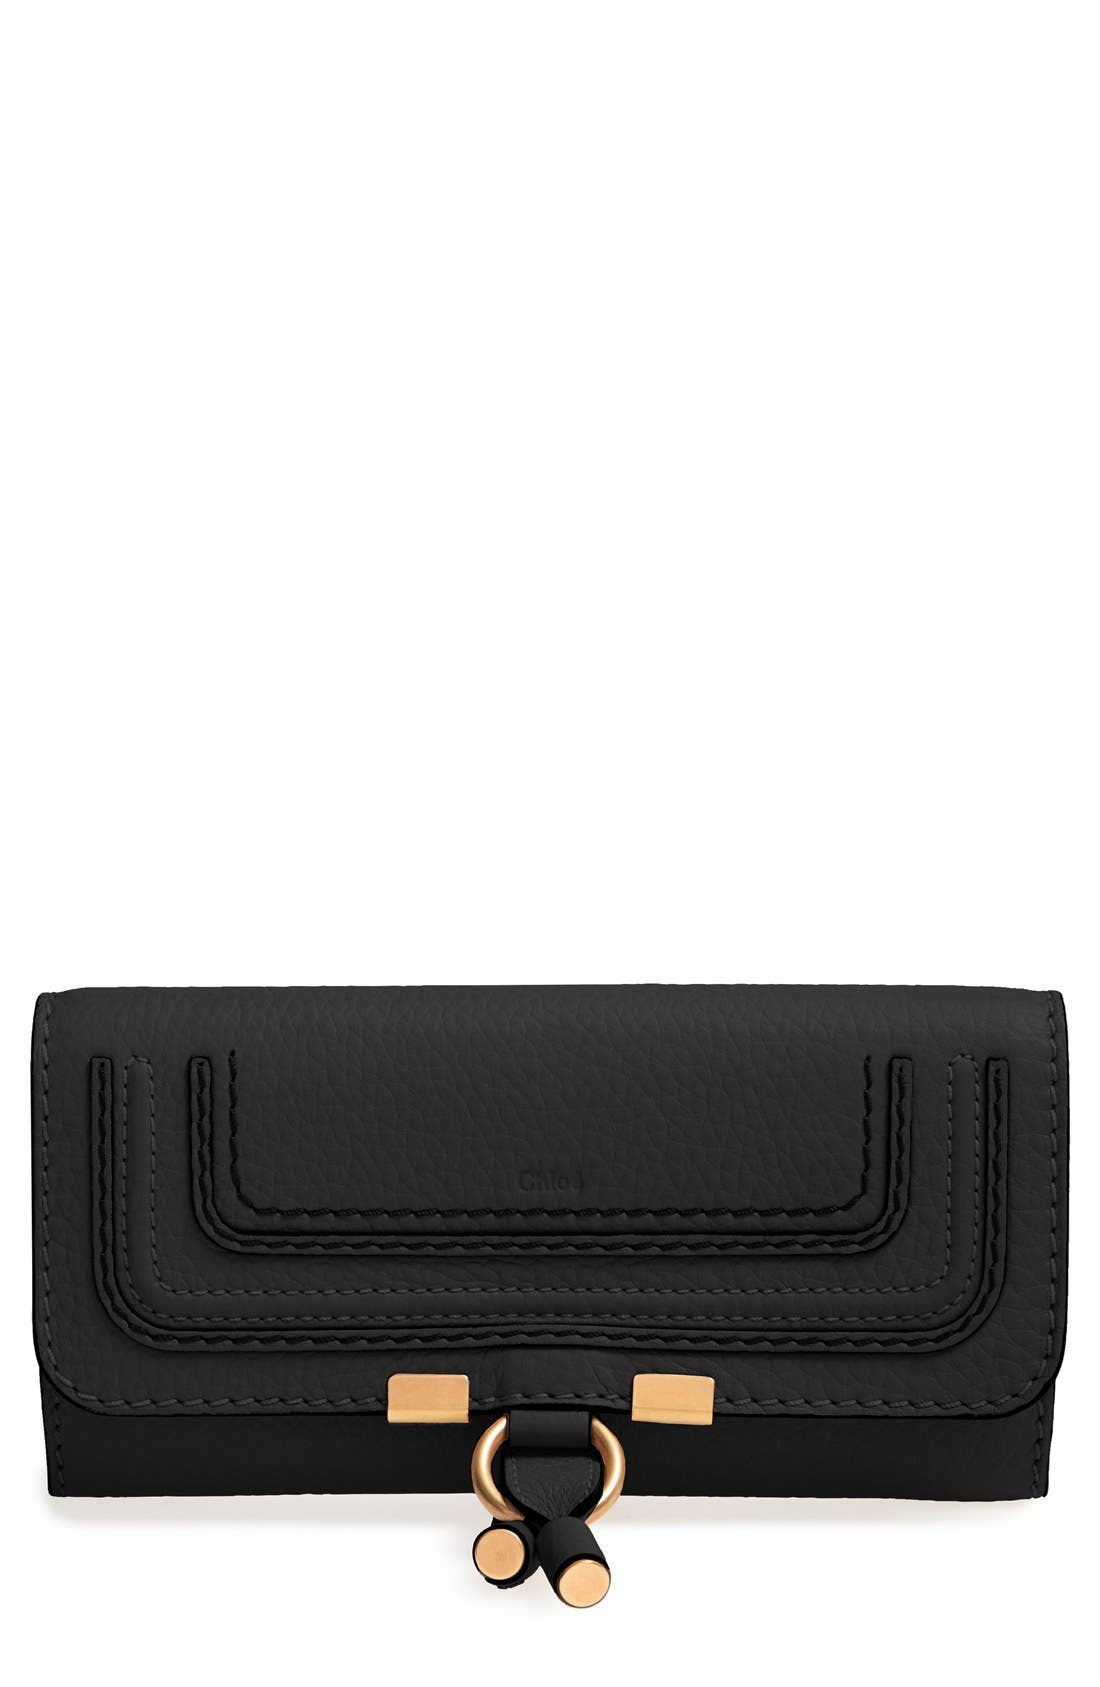 Main Image - Chloé 'Marcie - Long' Leather Flap Wallet